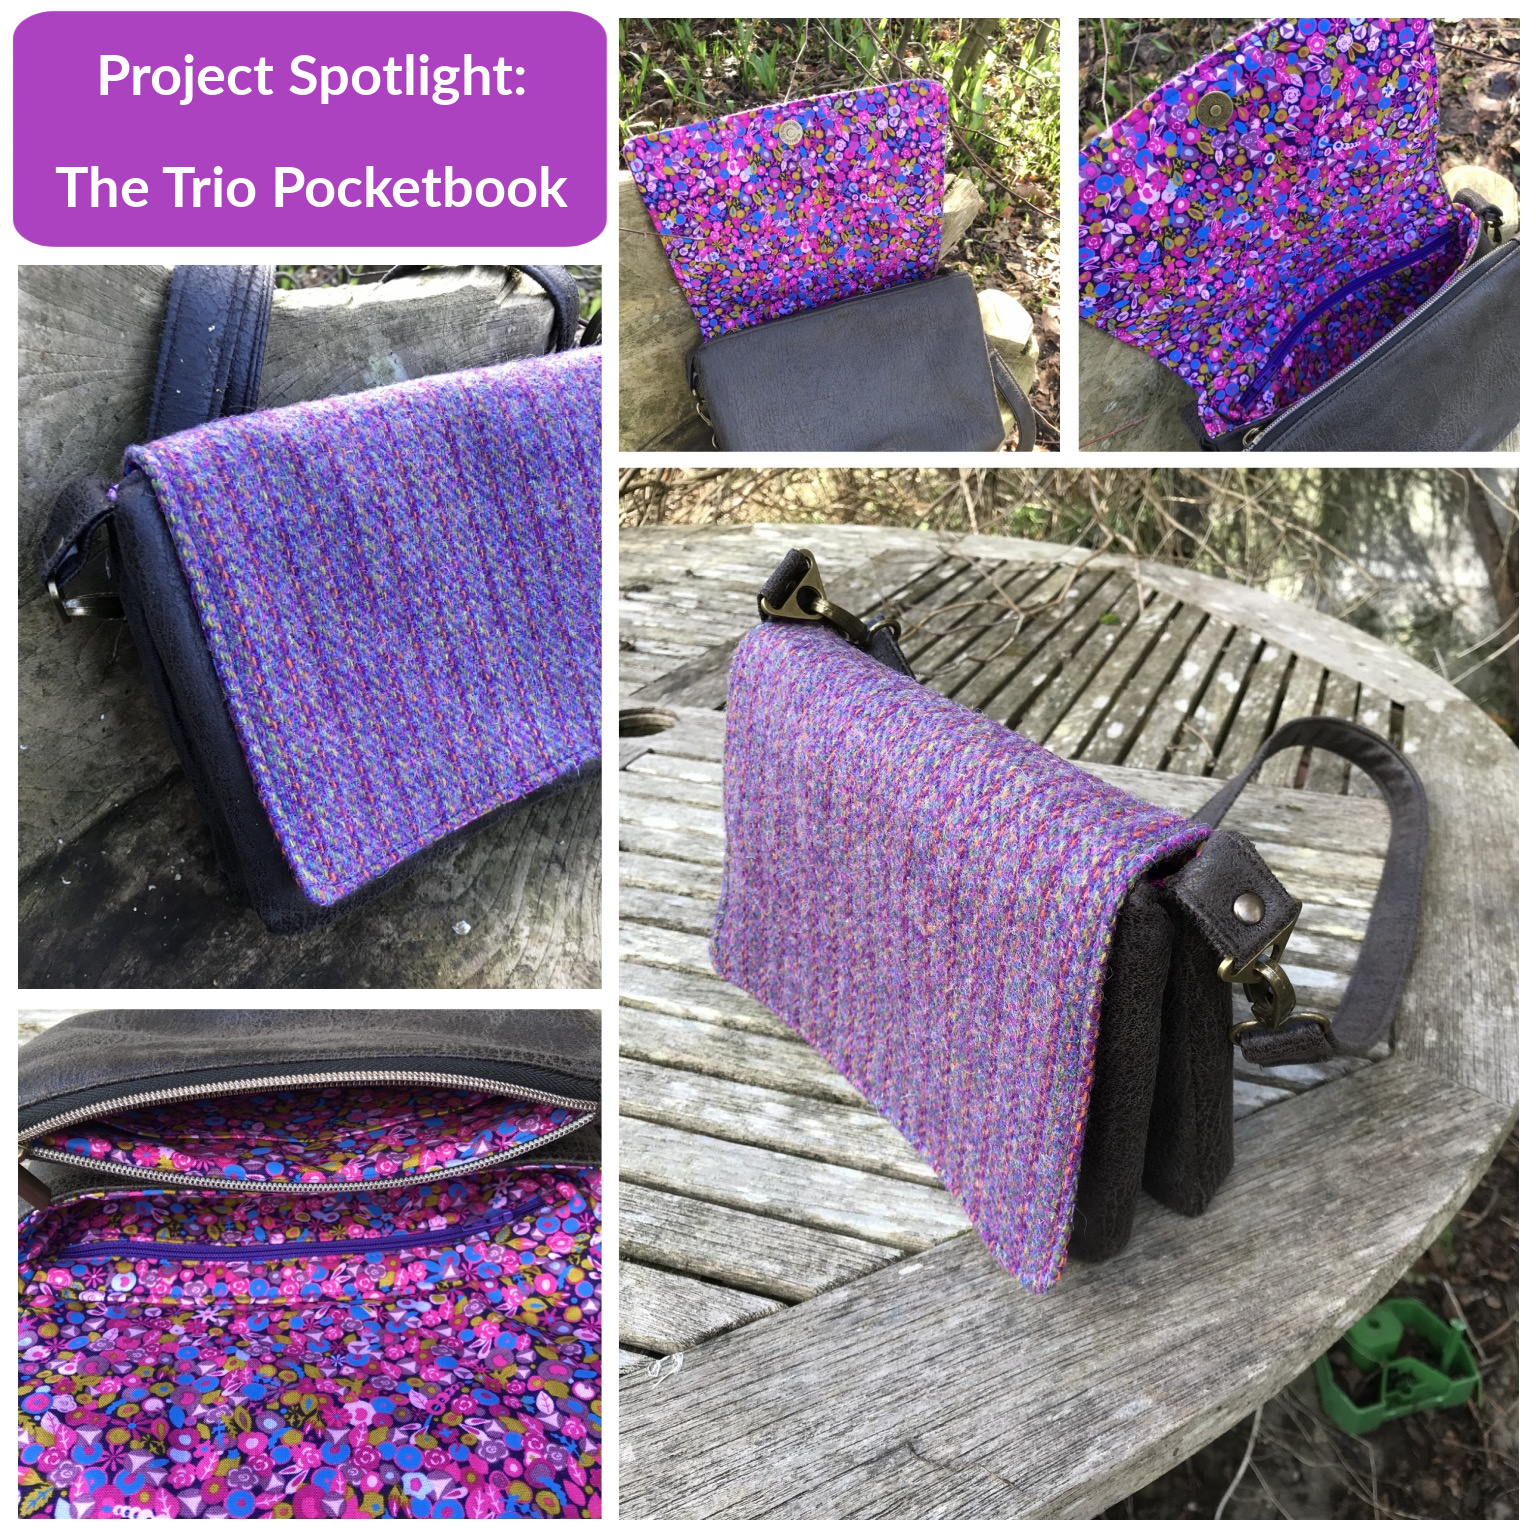 The Trio Pocketbook from The Complete Bag Making Masterclass